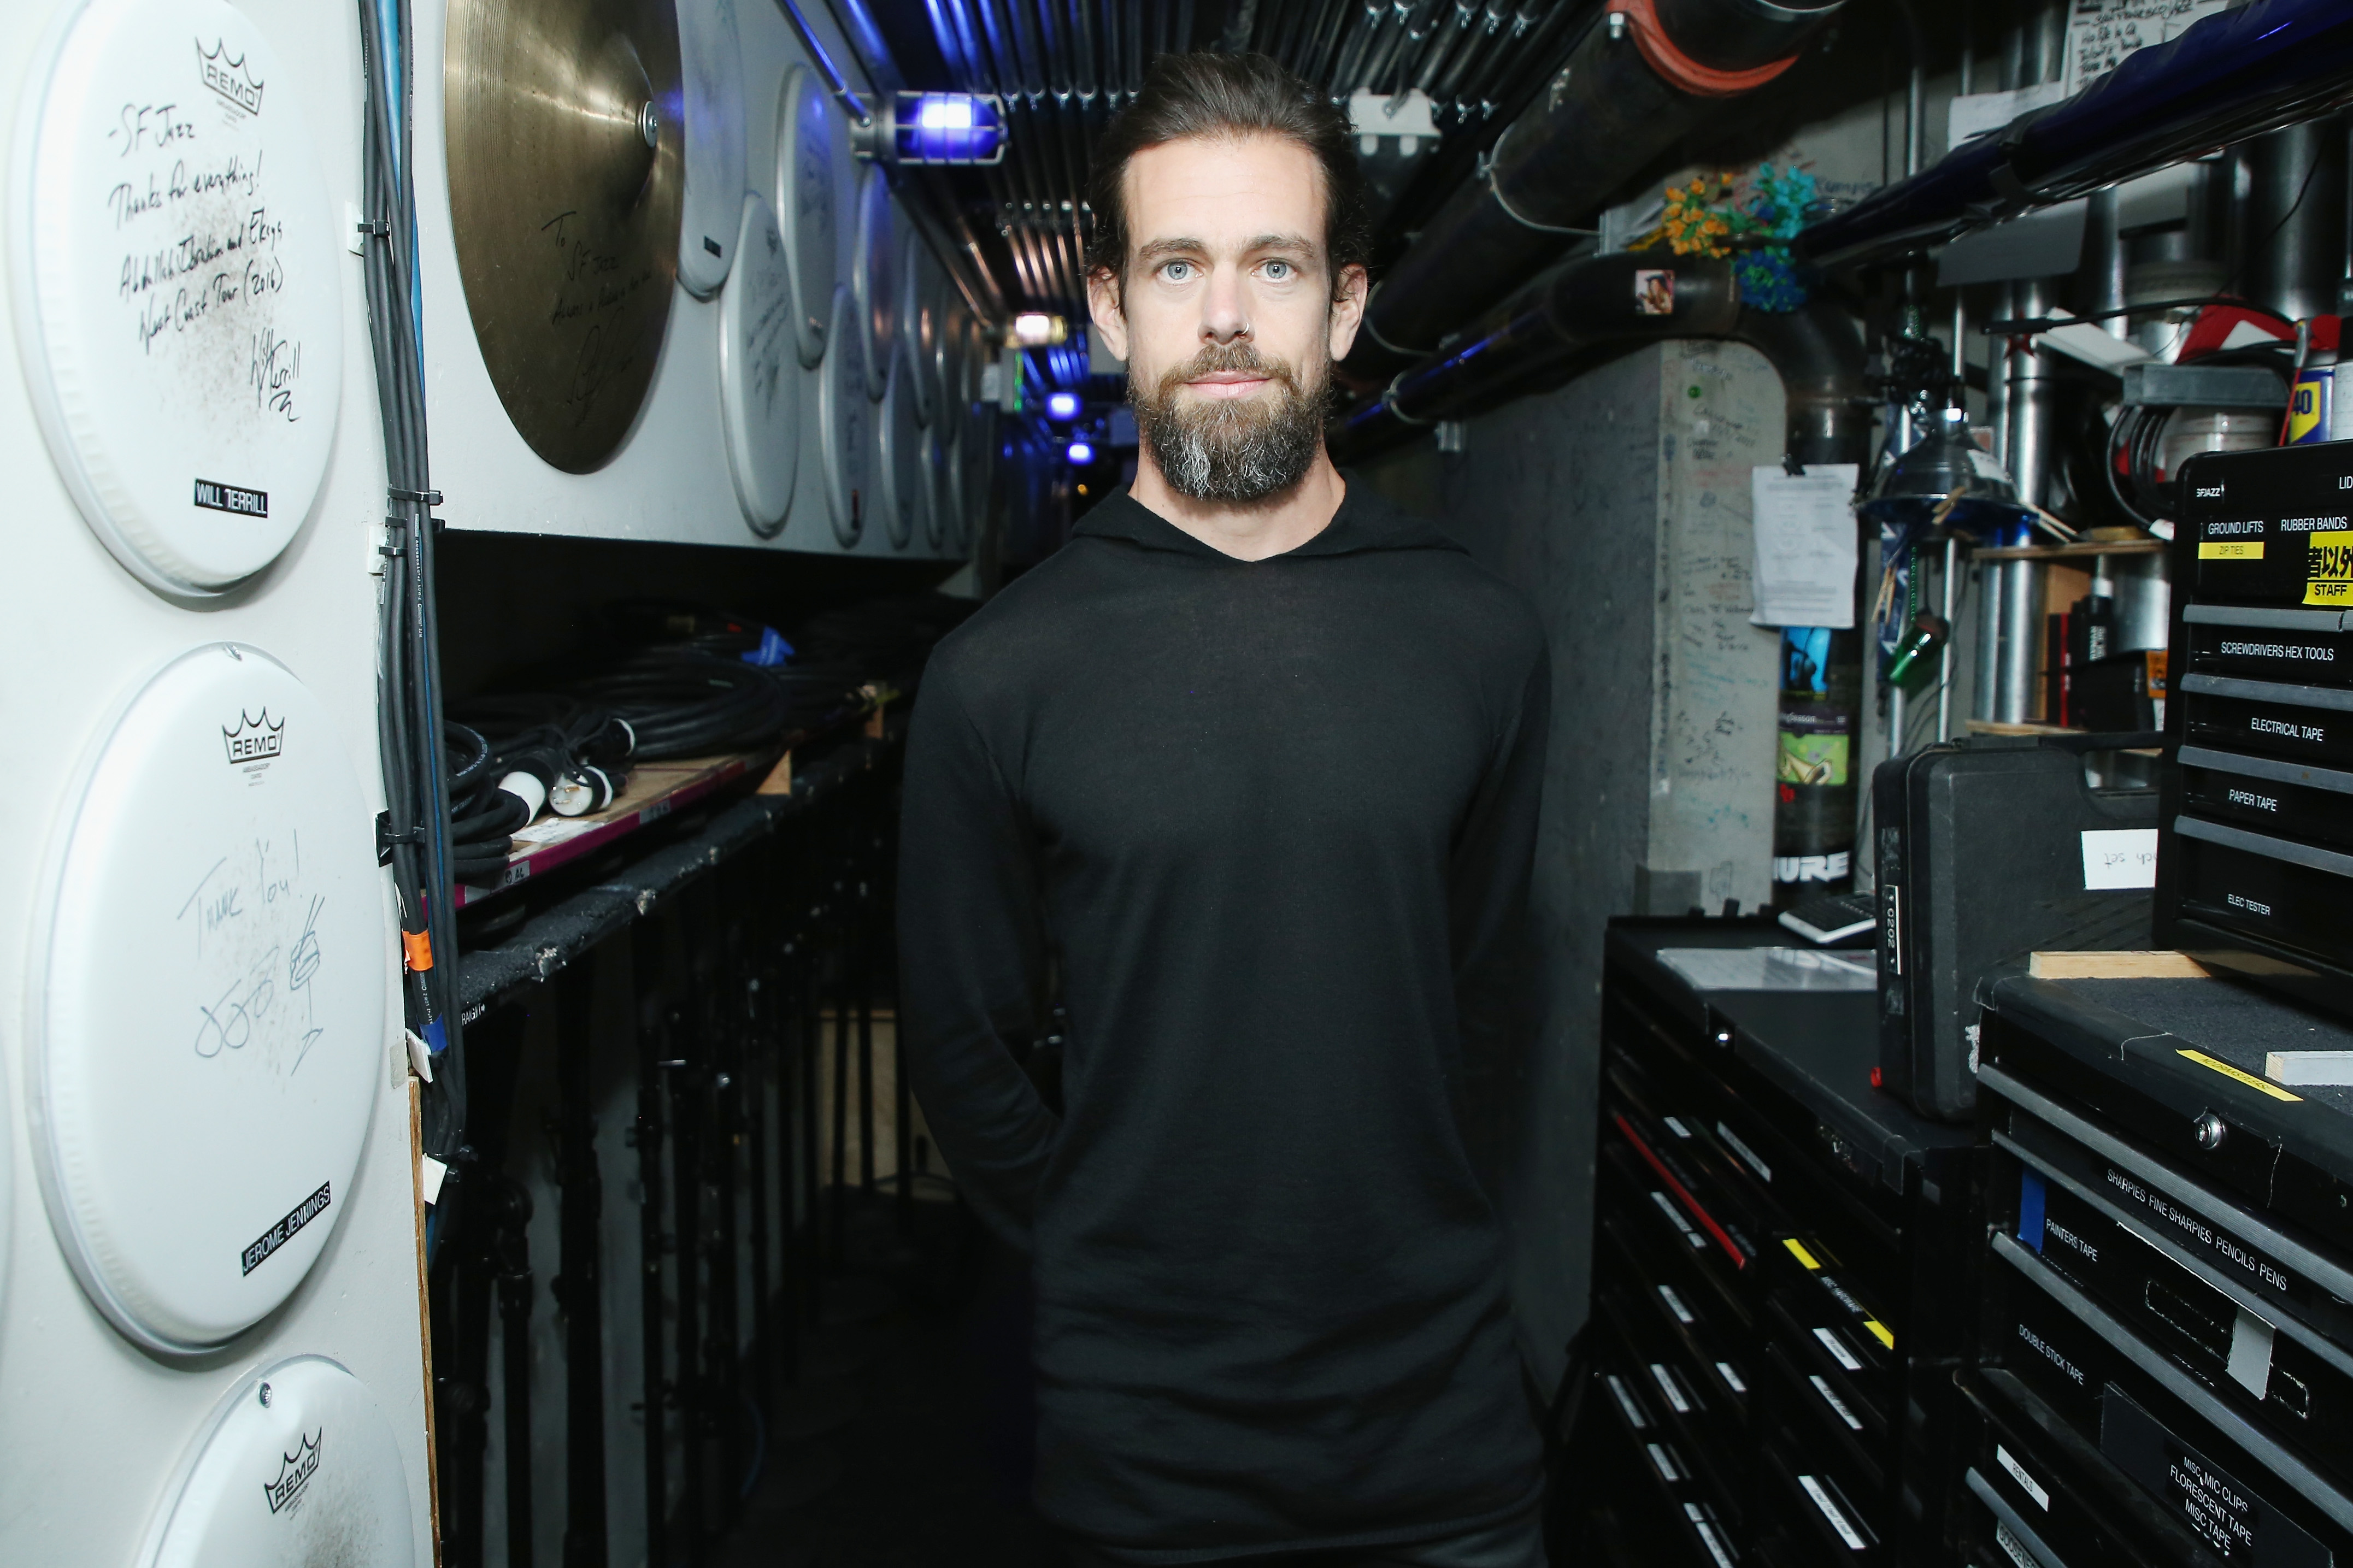 Jack Dorsey attends WIRED25 Summit: WIRED Celebrates 25th Anniversary With Tech Icons Of The Past & Future on October 15, 2018 in San Francisco, California. Phillip Faraone/Getty Images for WIRED25